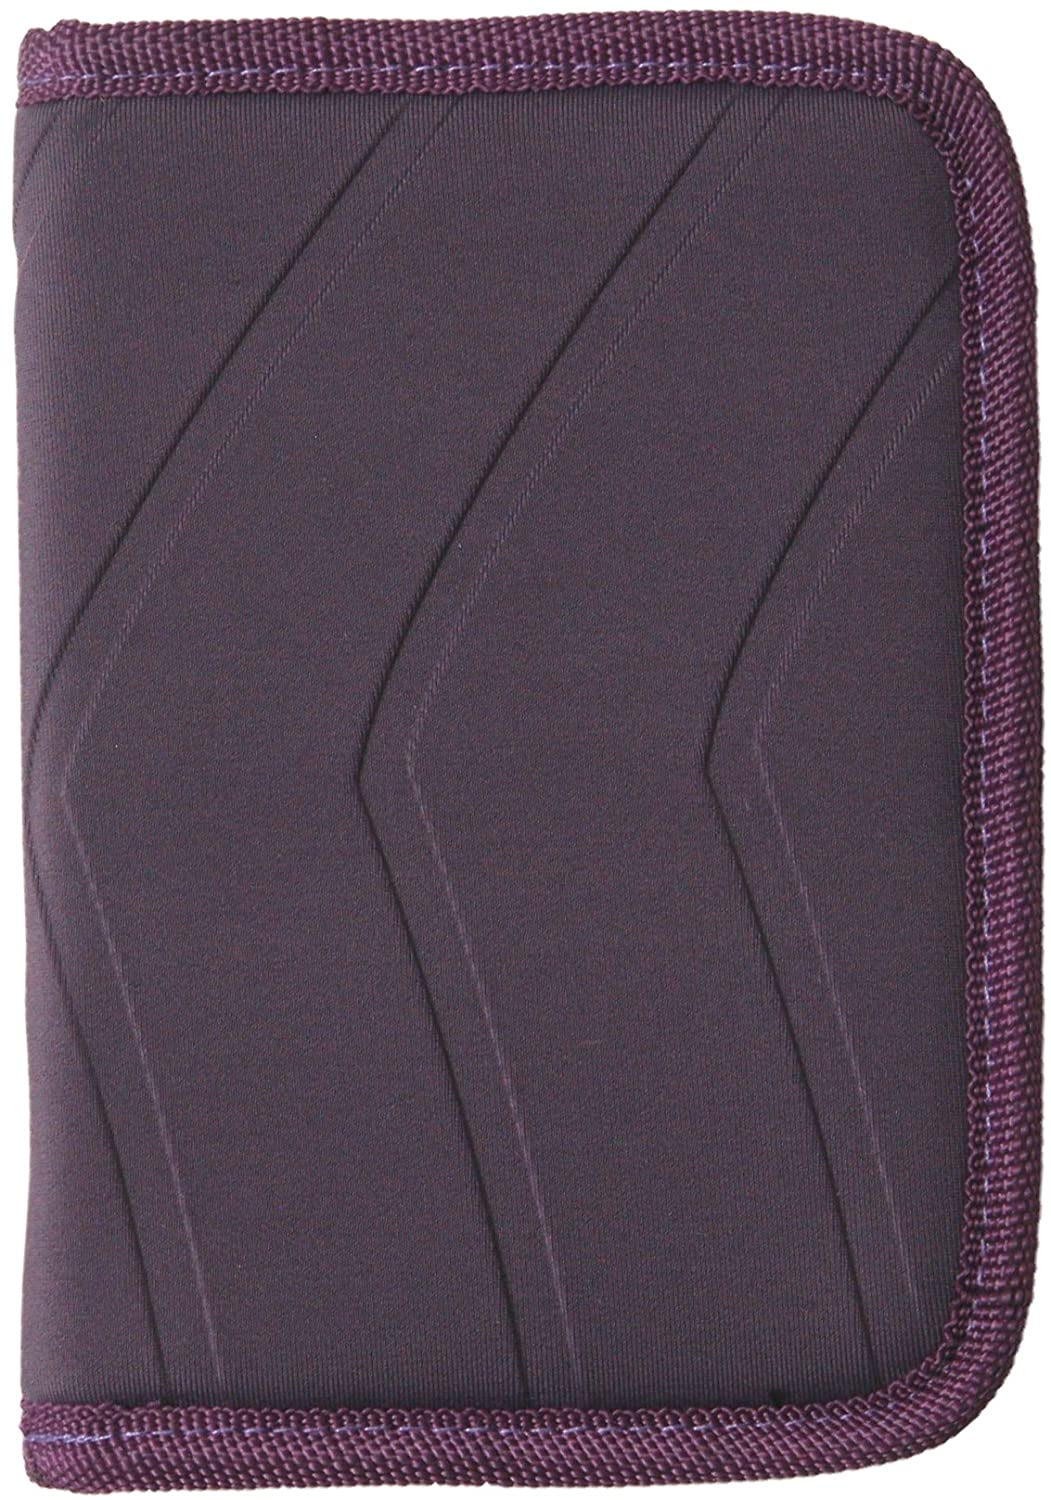 ORB Travel-WP600-P-Plum-RFID Passport Holder zippered Family wallet multi-function travel document organizer holds up to 4 passports